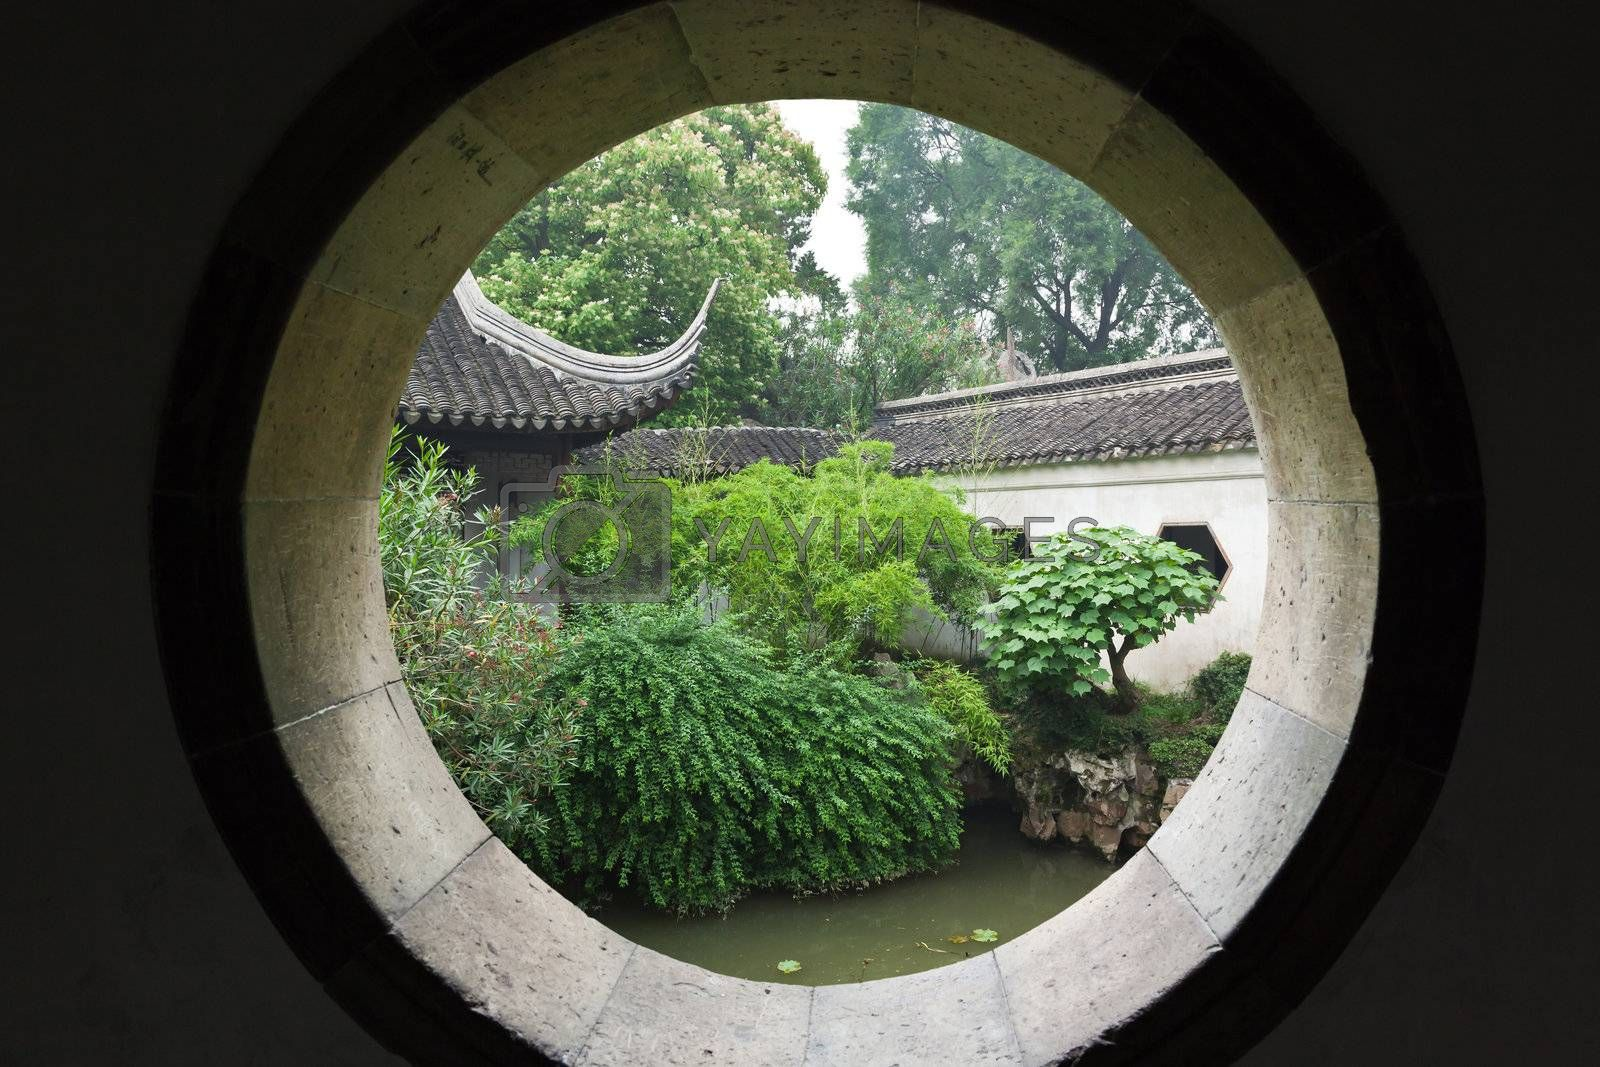 famous shizilin garden (lion forest rock formation) in Suzhou China